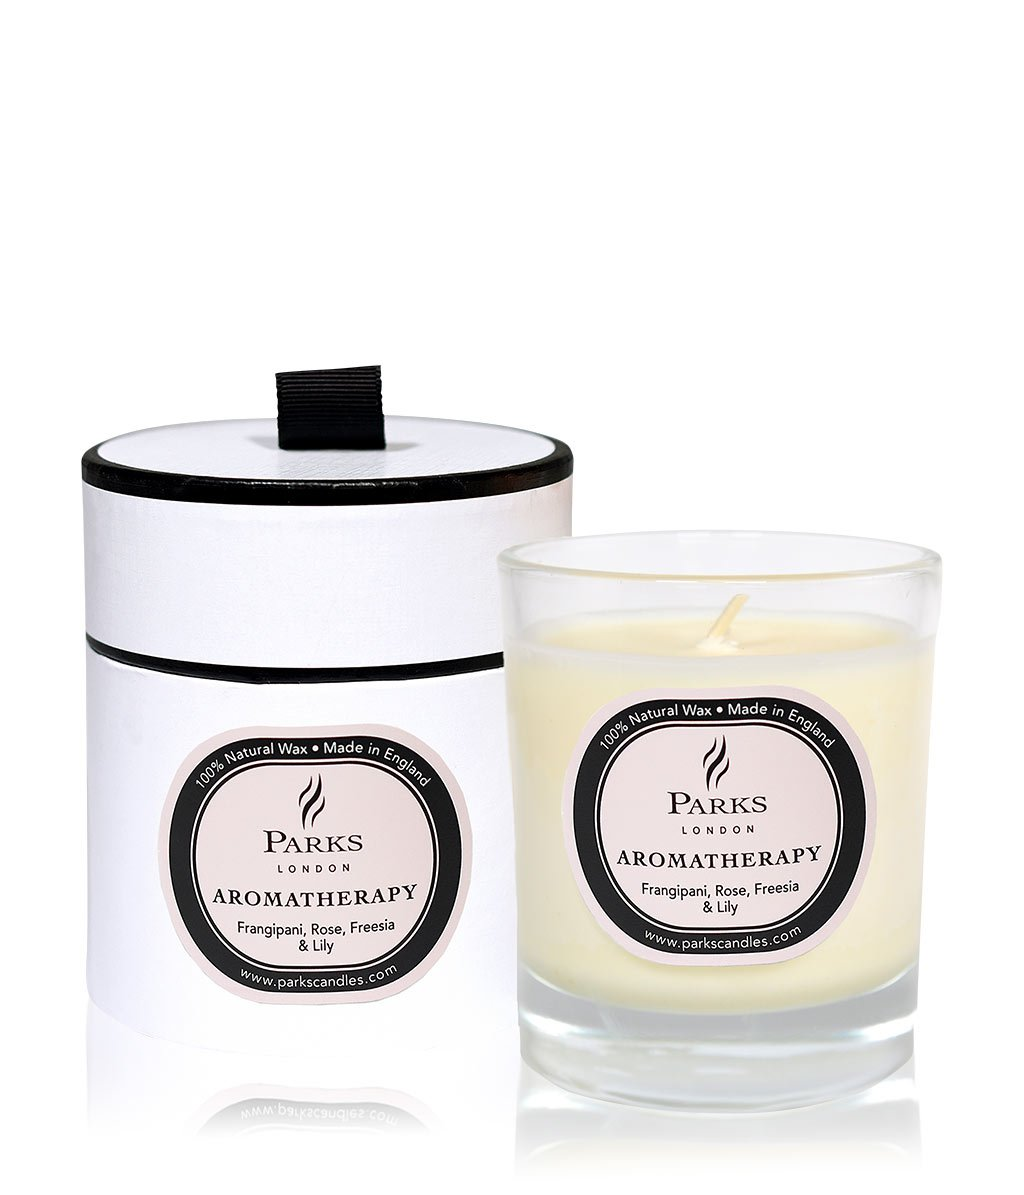 Parks London Duftkerze Parks London Aromatherapy Frangipani, Rose, Freesia & Lily ...